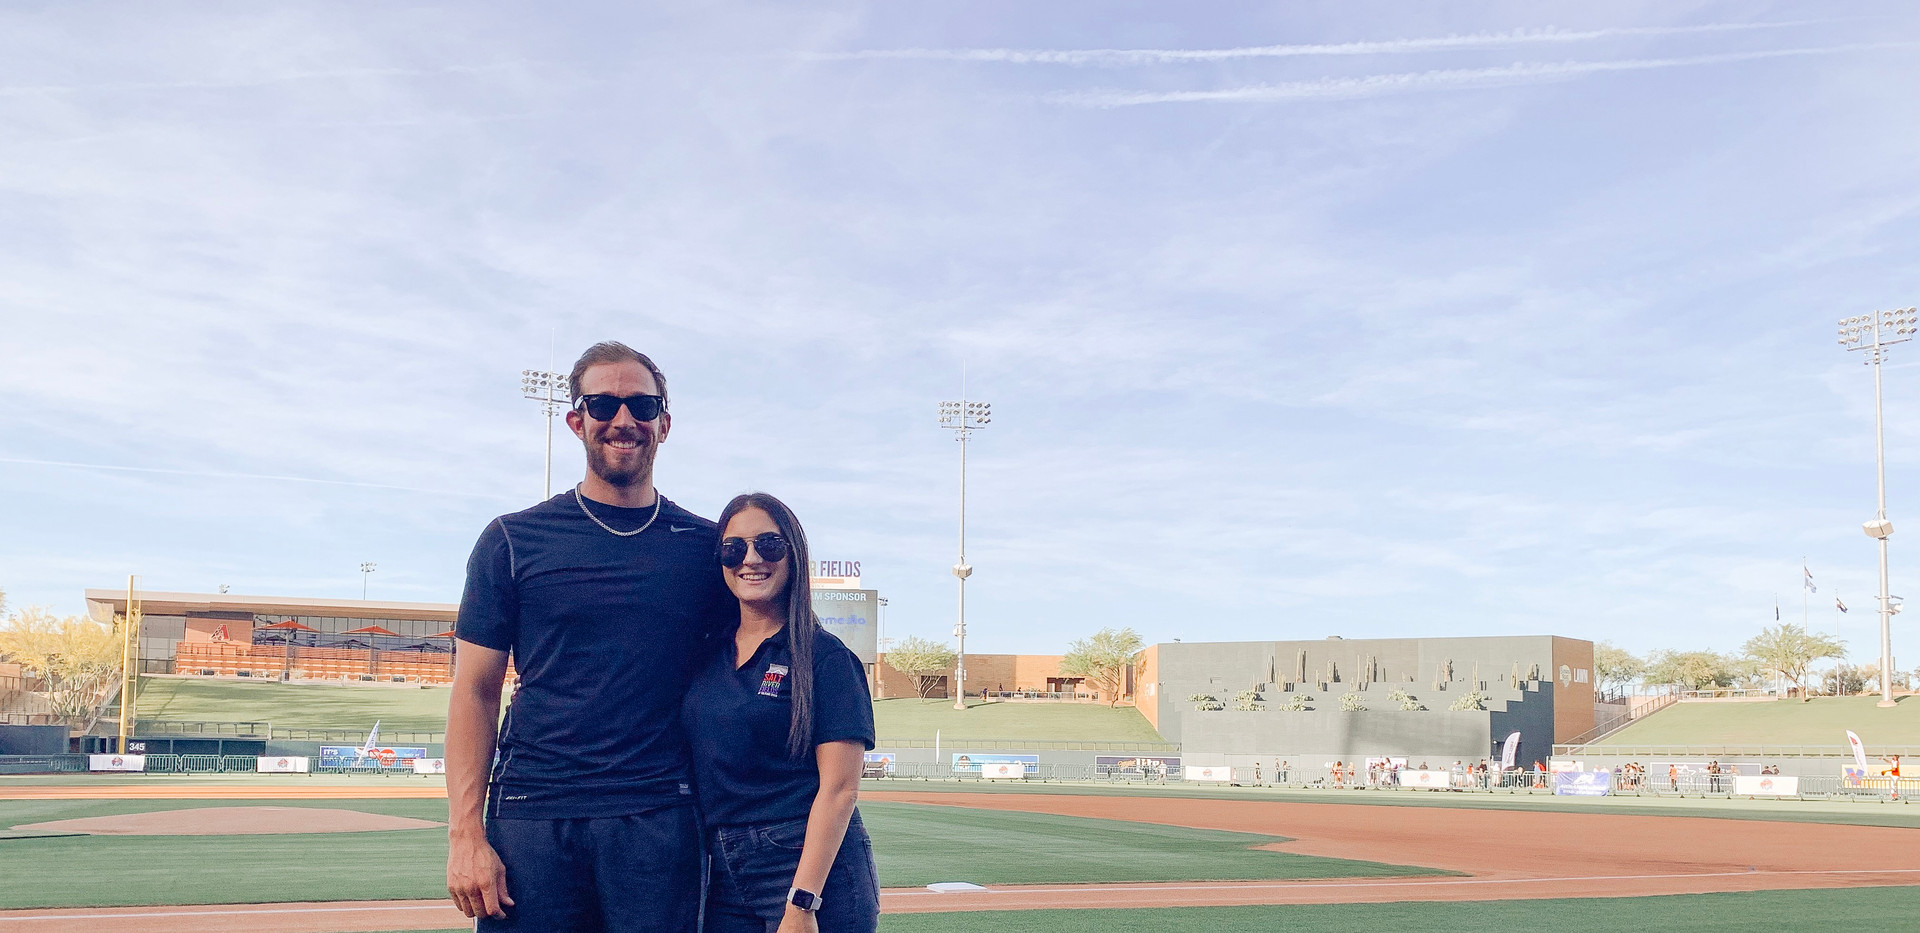 Larry Fitzgerald Celebrity Softball Game, 2019, Salt River Fields